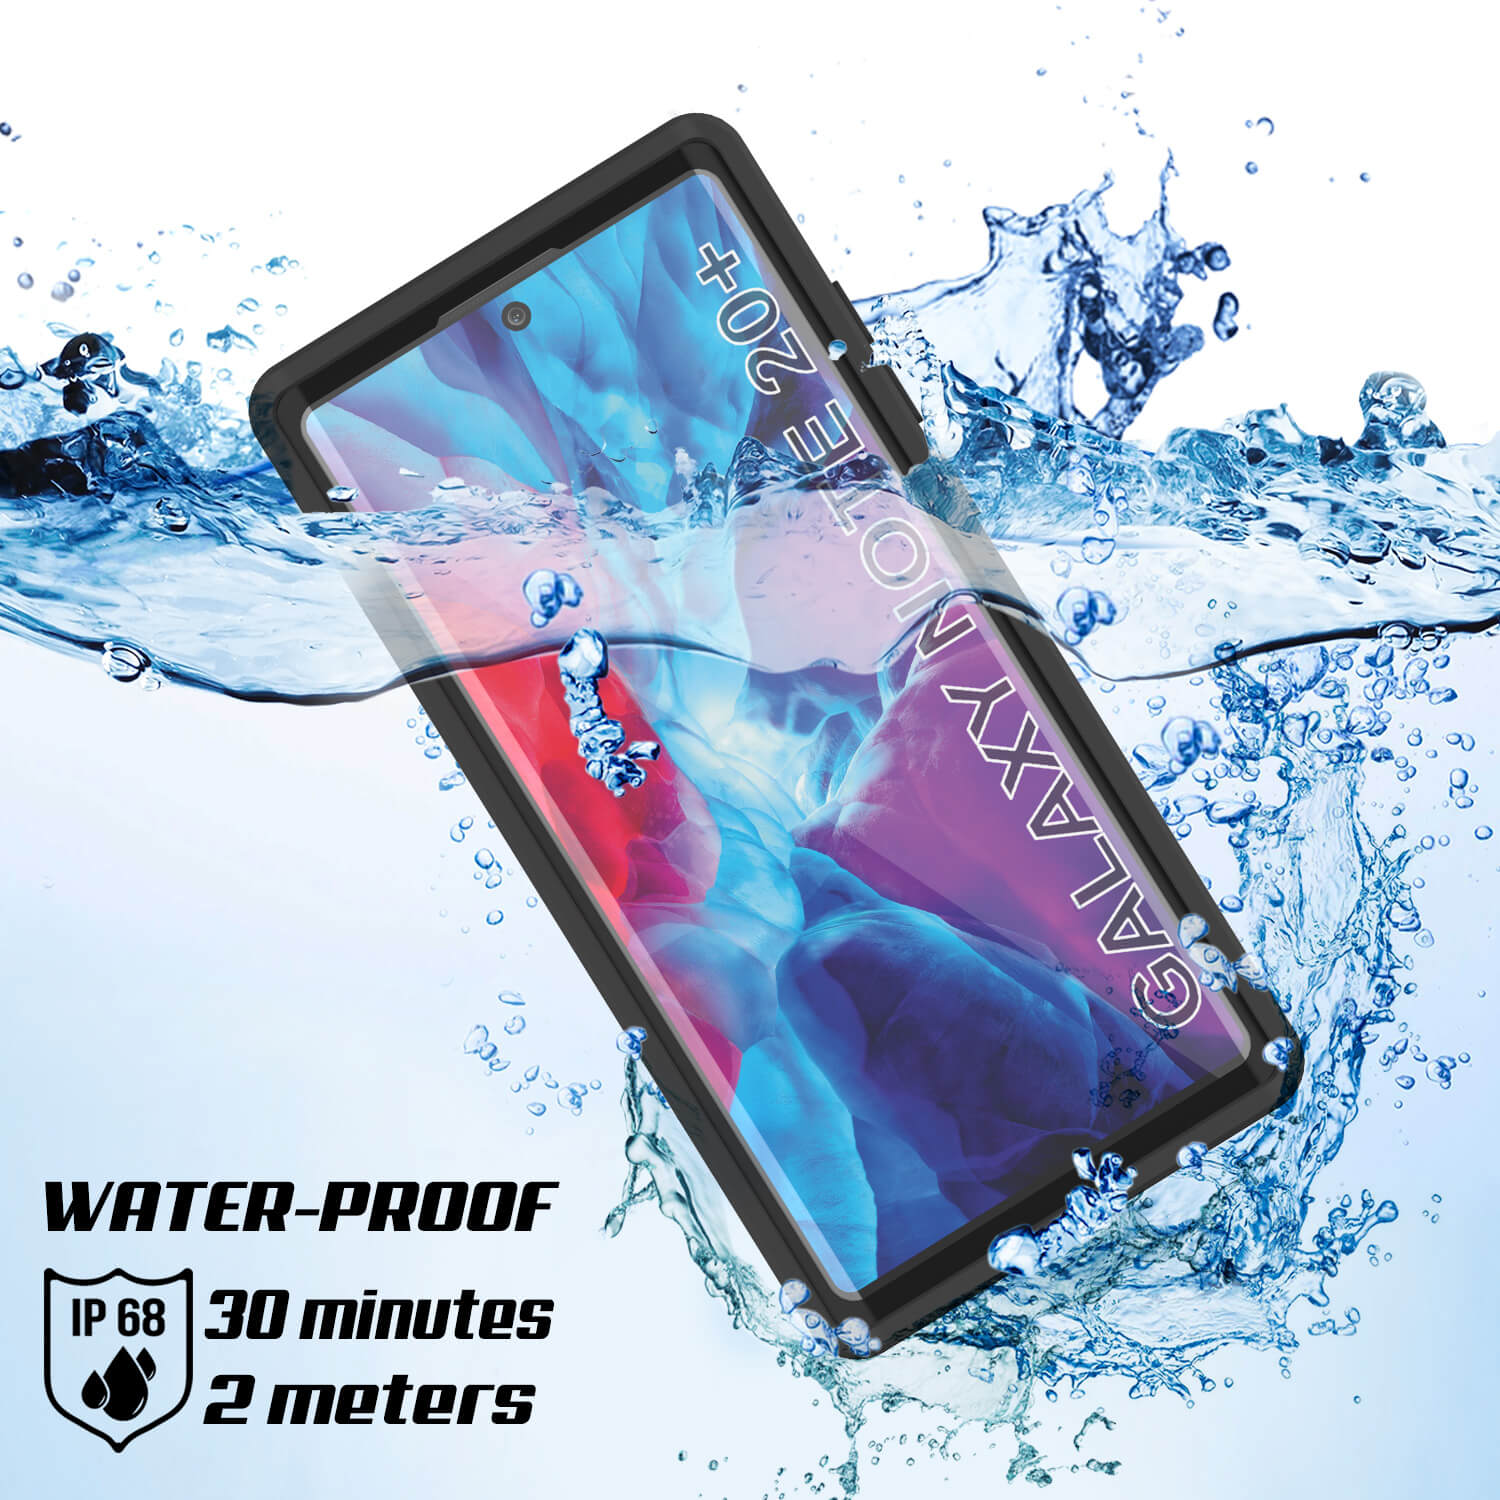 Galaxy Note 20 Ultra Waterproof Case, Punkcase Studstar Clear Thin Armor Cover